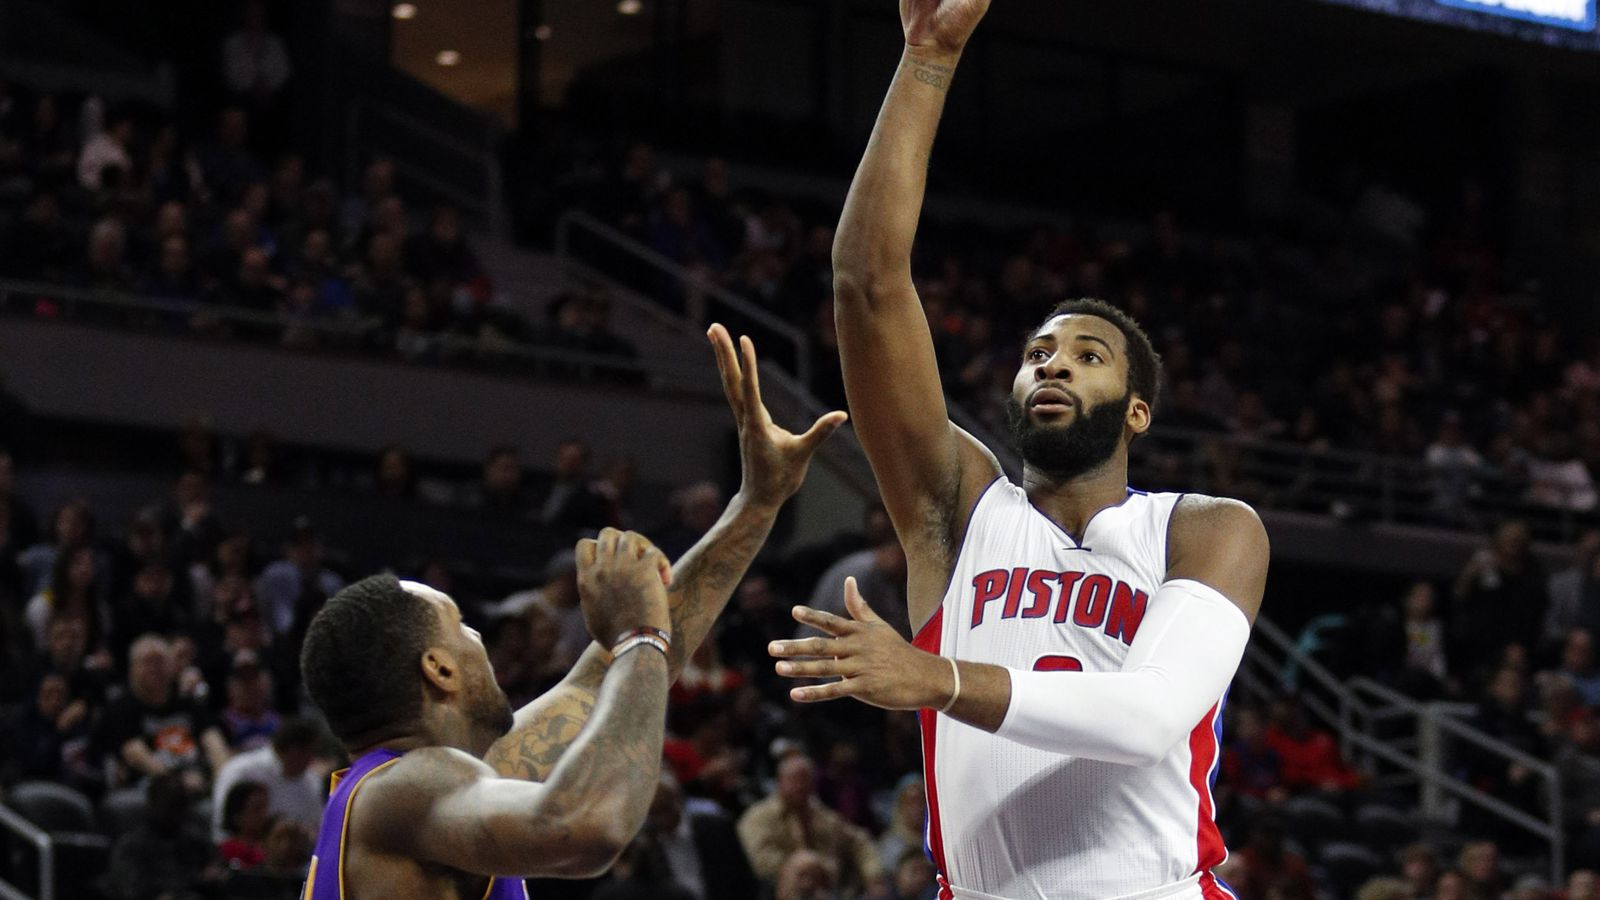 Pistons Vs Lakers: Pistons Vs. Lakers Final Score: Drummond Feasts On Baby